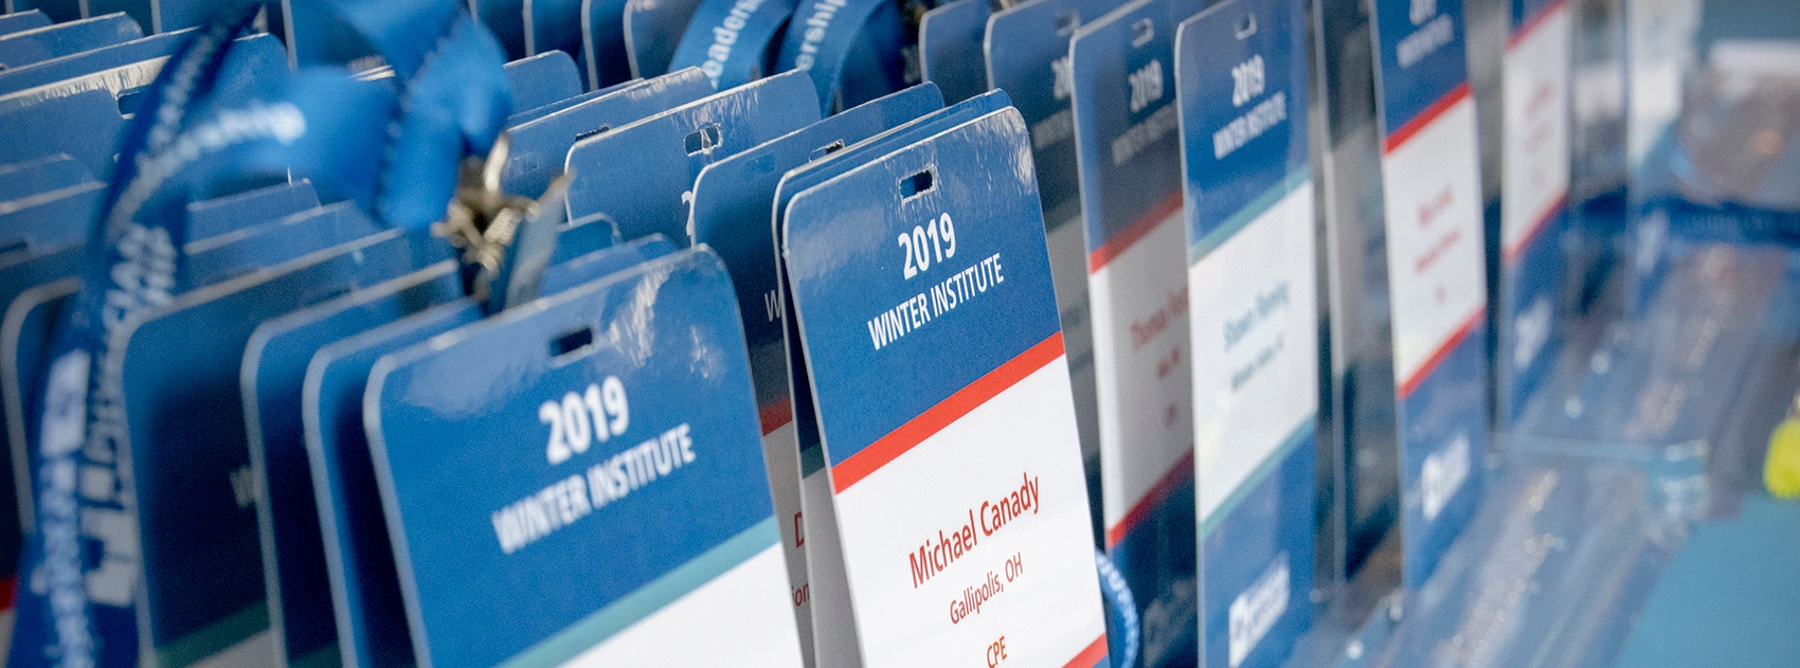 Photo Gallery: AAPL 2019 Winter Institute